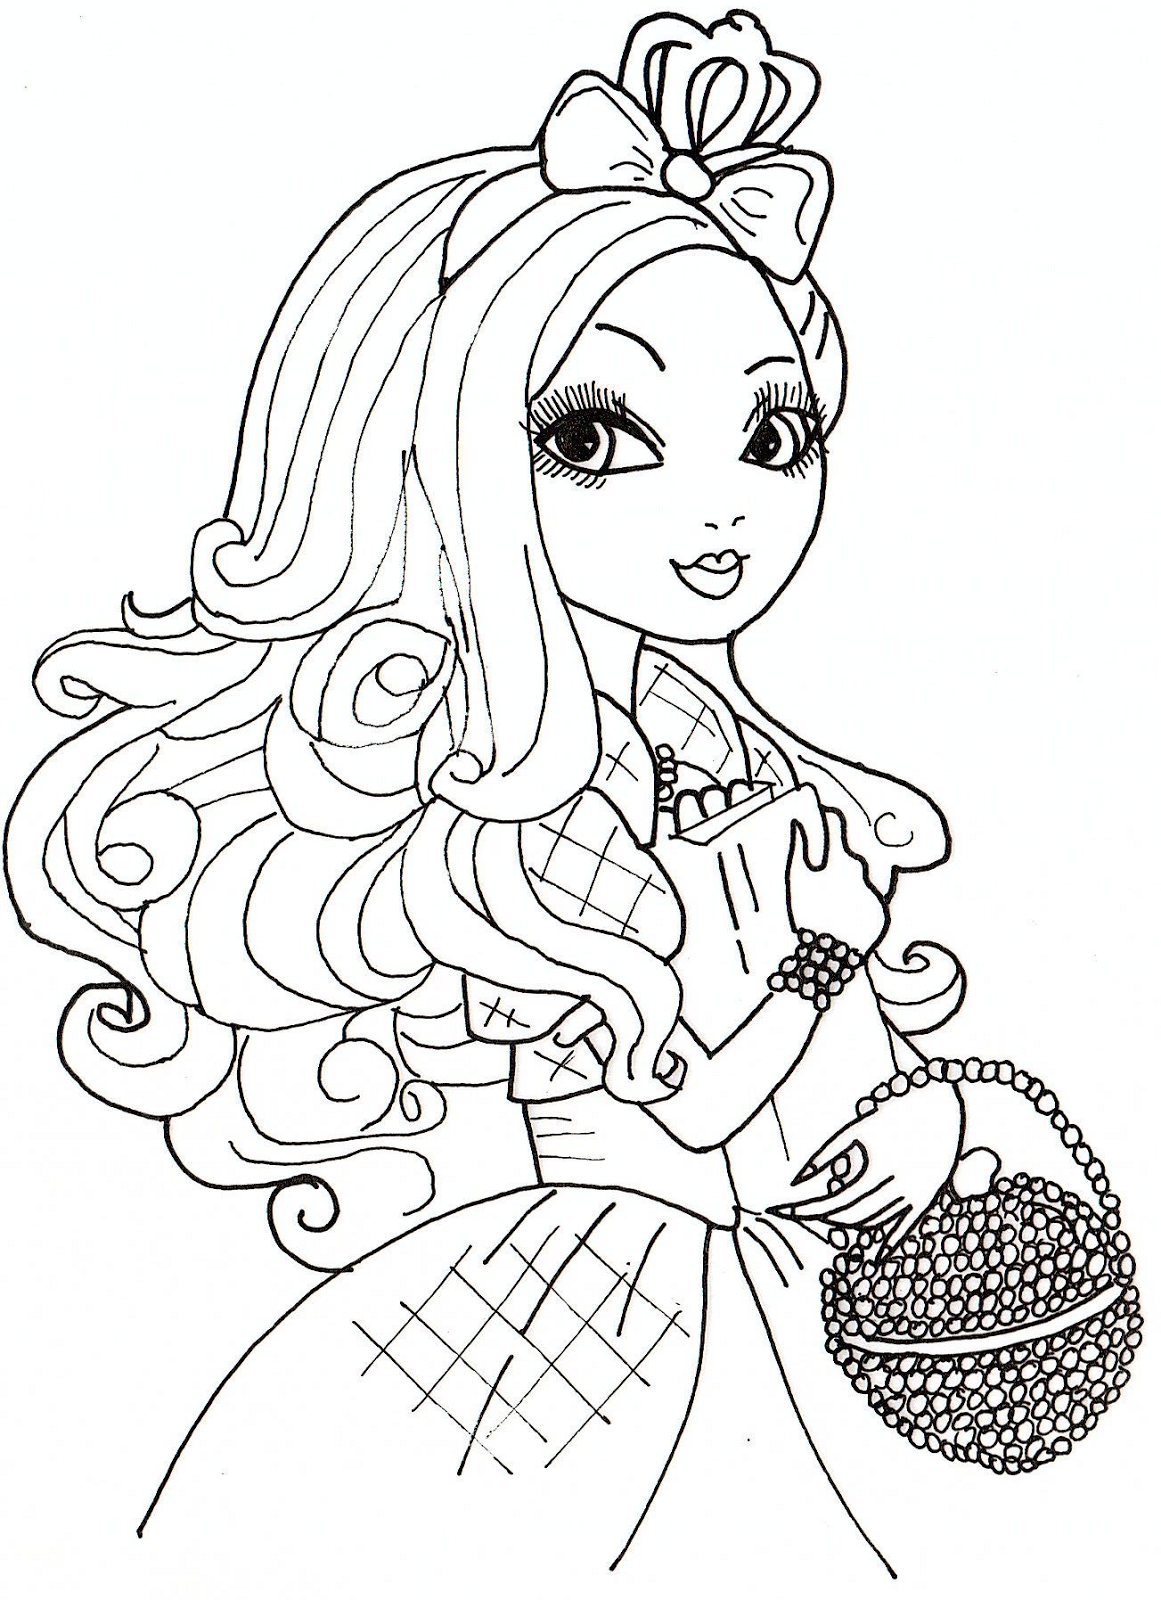 dibujos para colorear de ever after high